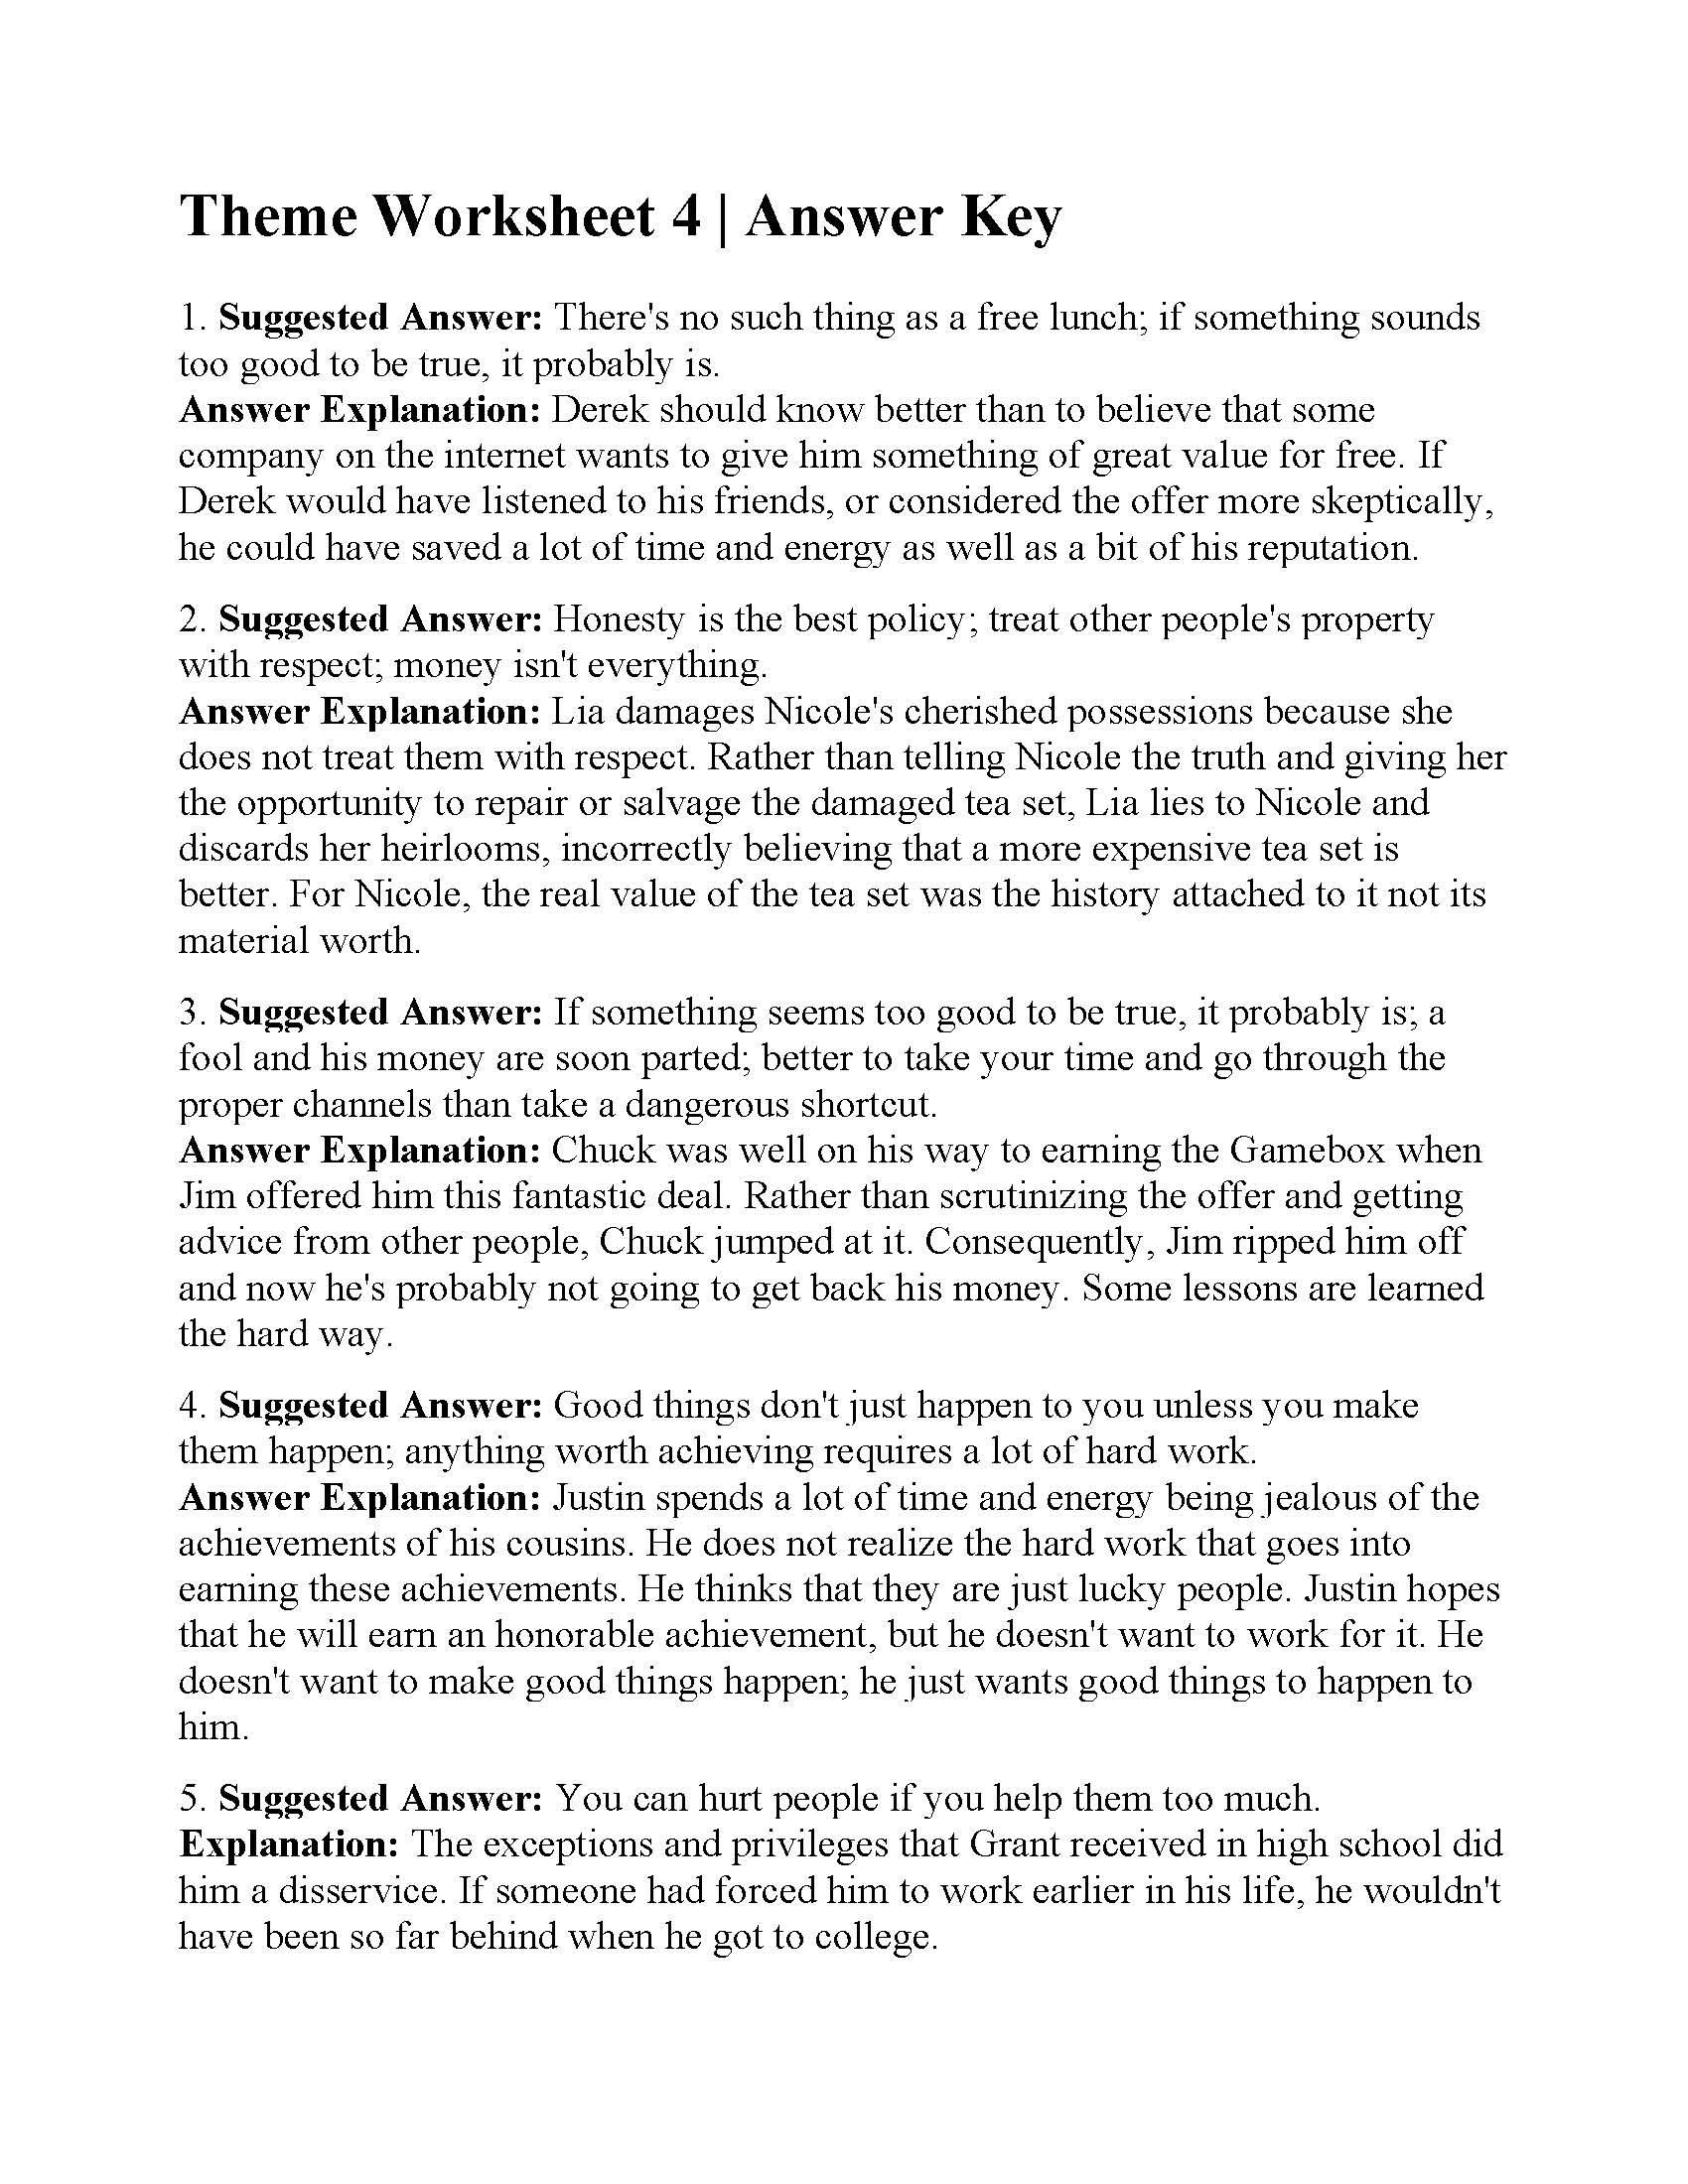 Theme Worksheets for 5th Grade This is the Answer Key for the theme Worksheet 4